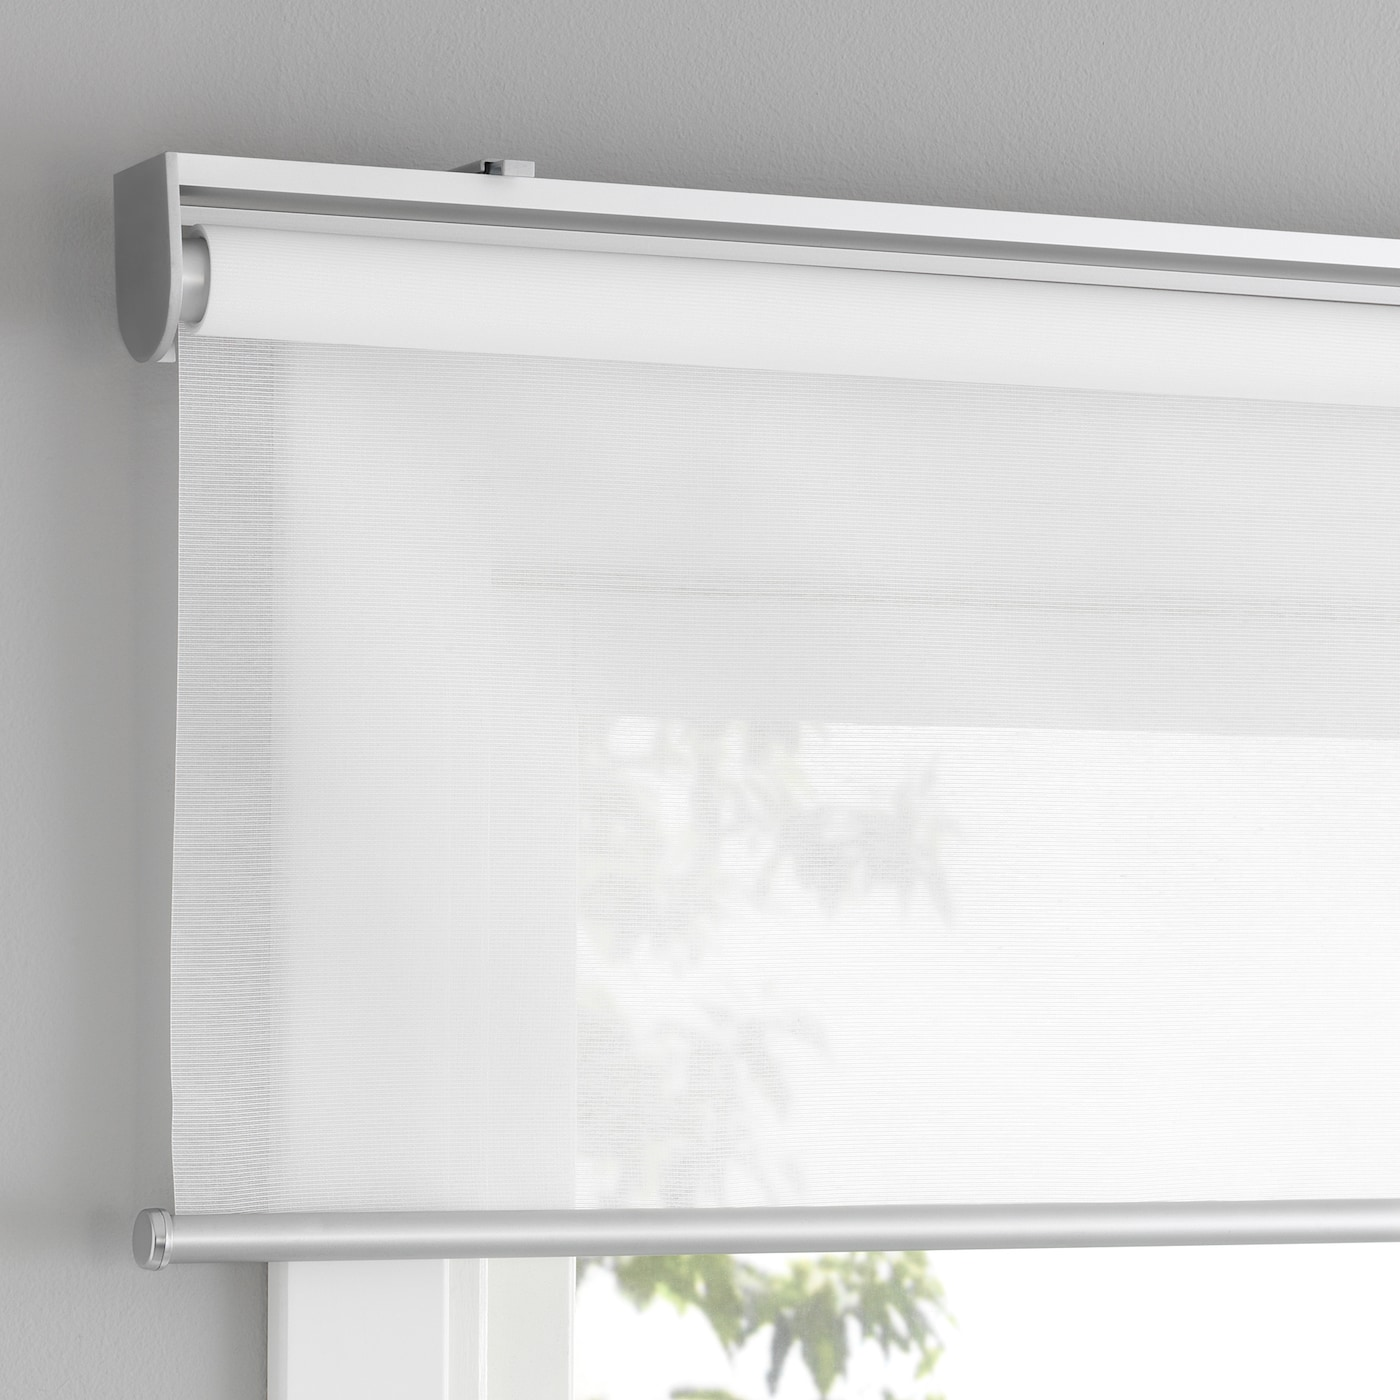 Room darkening curtains prevent most light from entering and provide privacy both day and night by blocking the view into the room from outside. Skogsklover Tenda A Rullo Bianco 60x195 Cm Ikea It